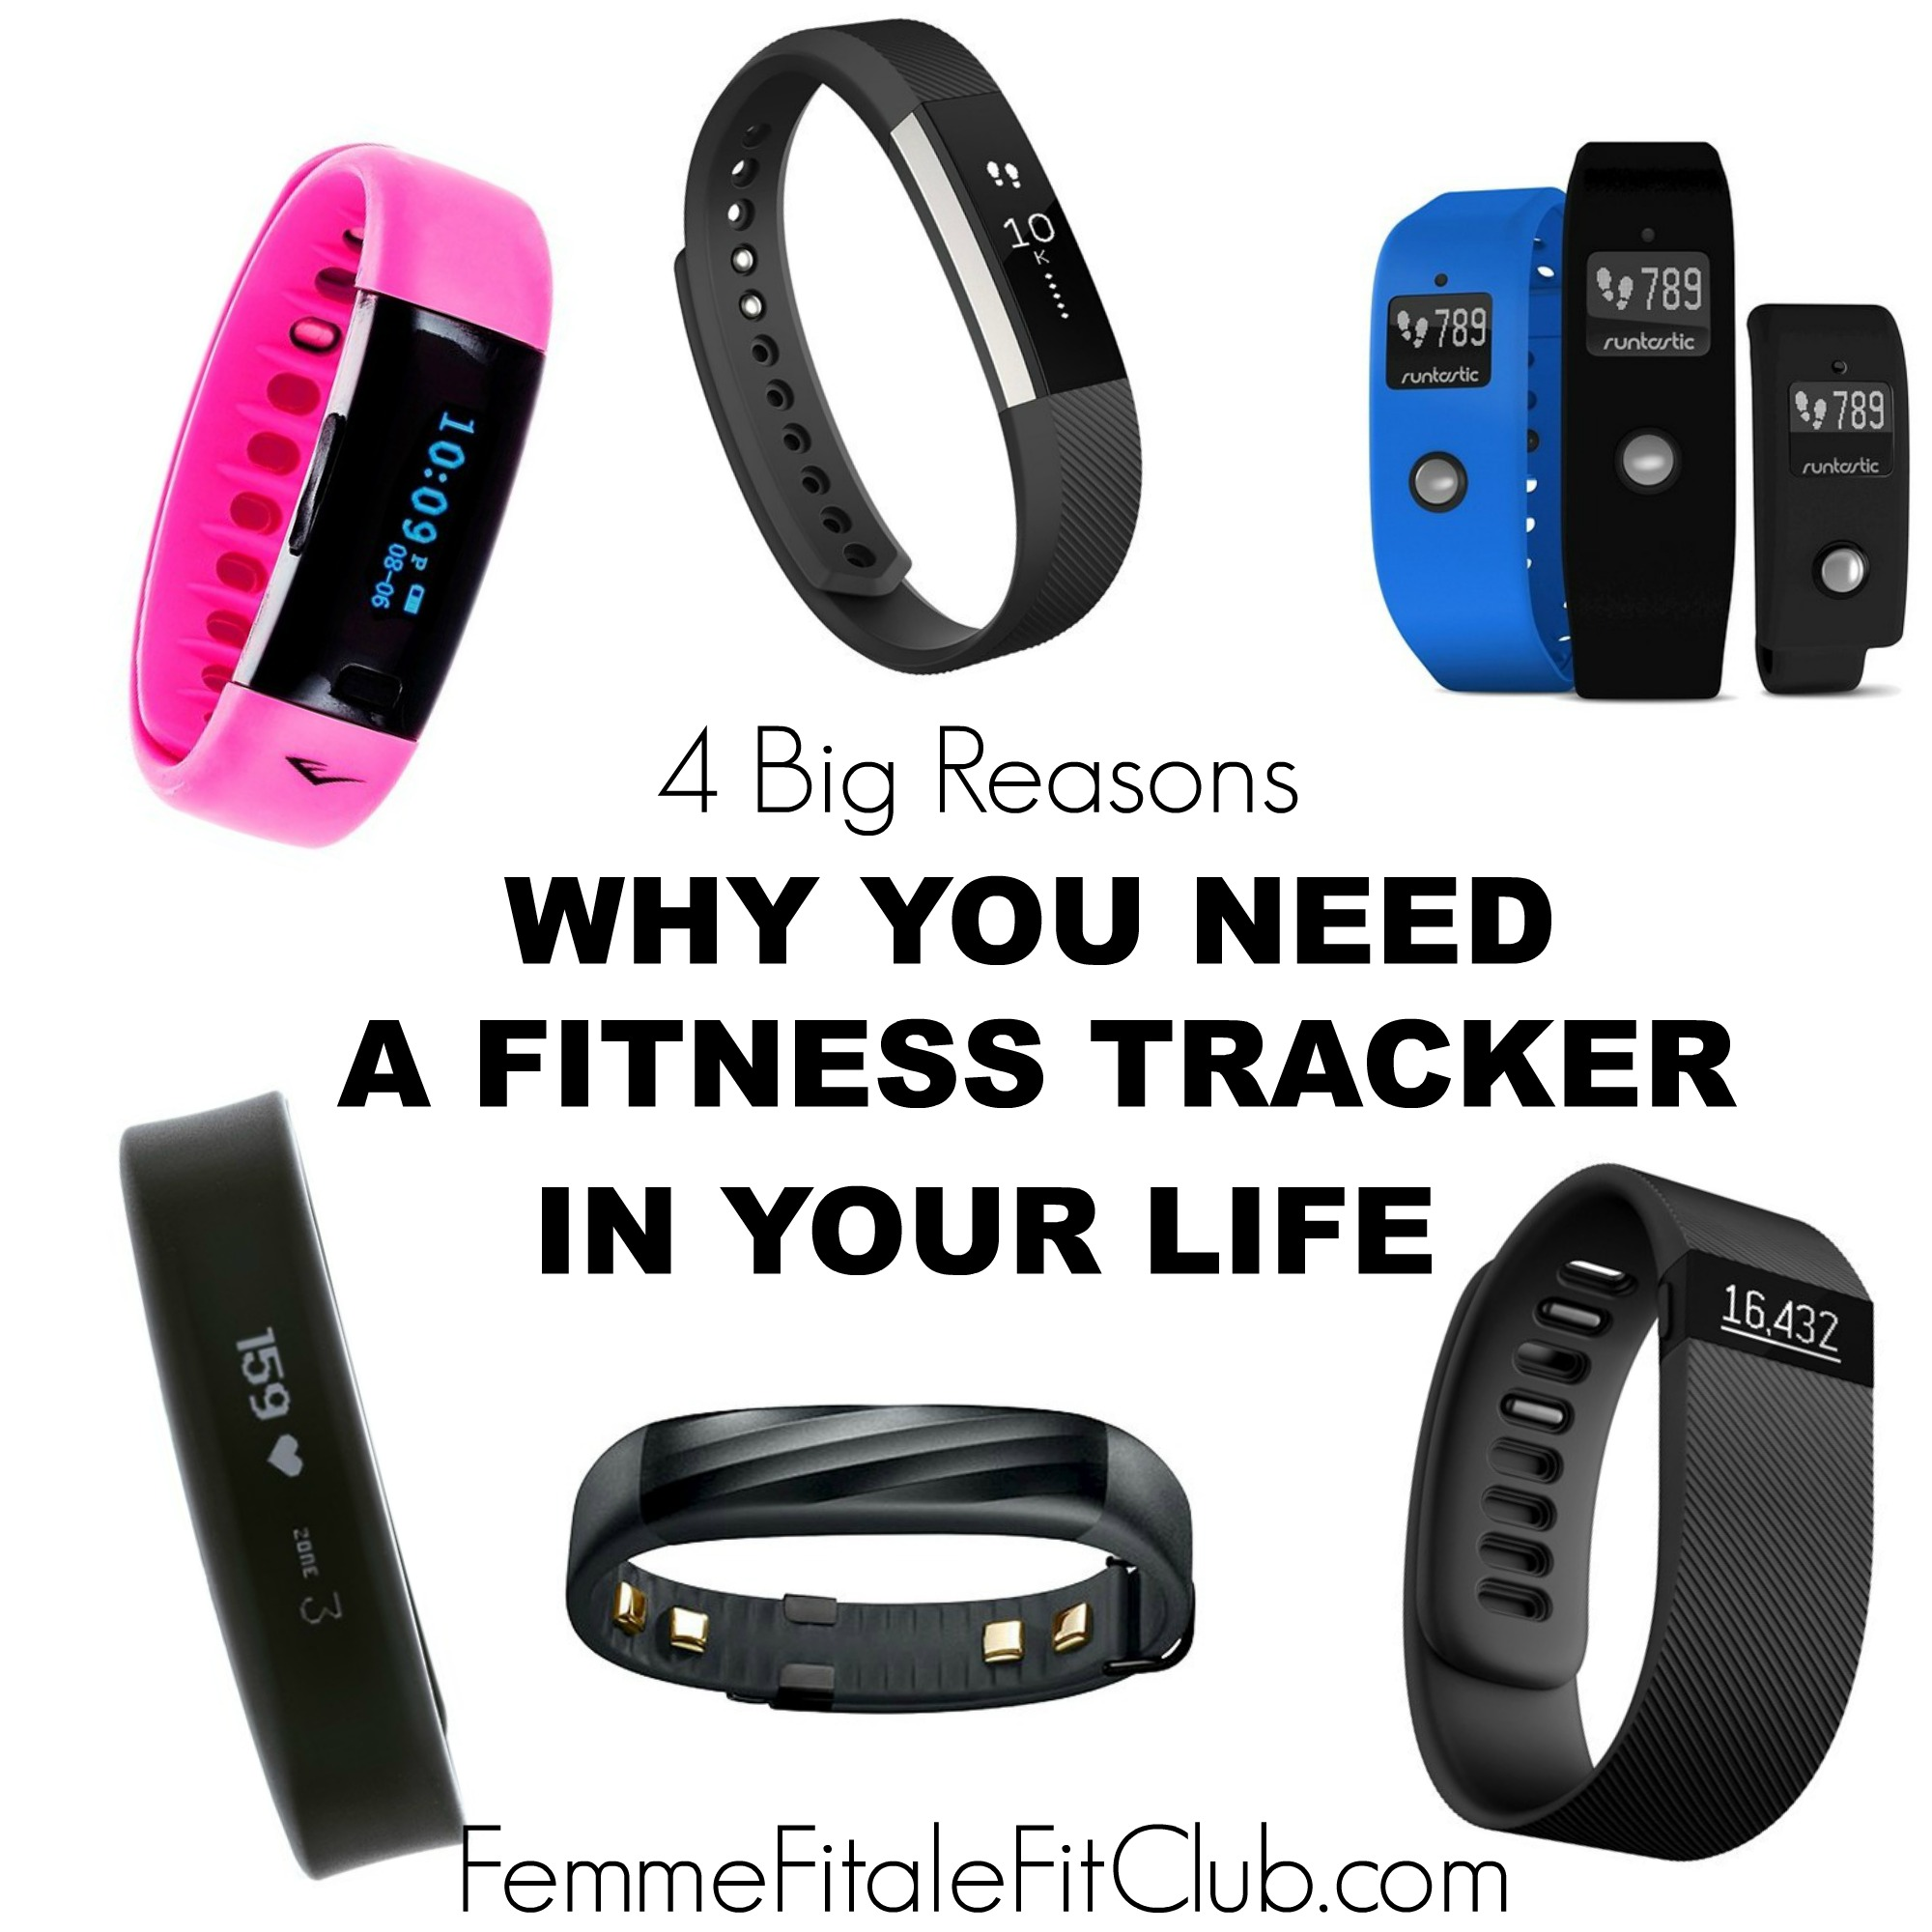 4 Big Reasons Why You Need a Fitness Tracker In Your Life